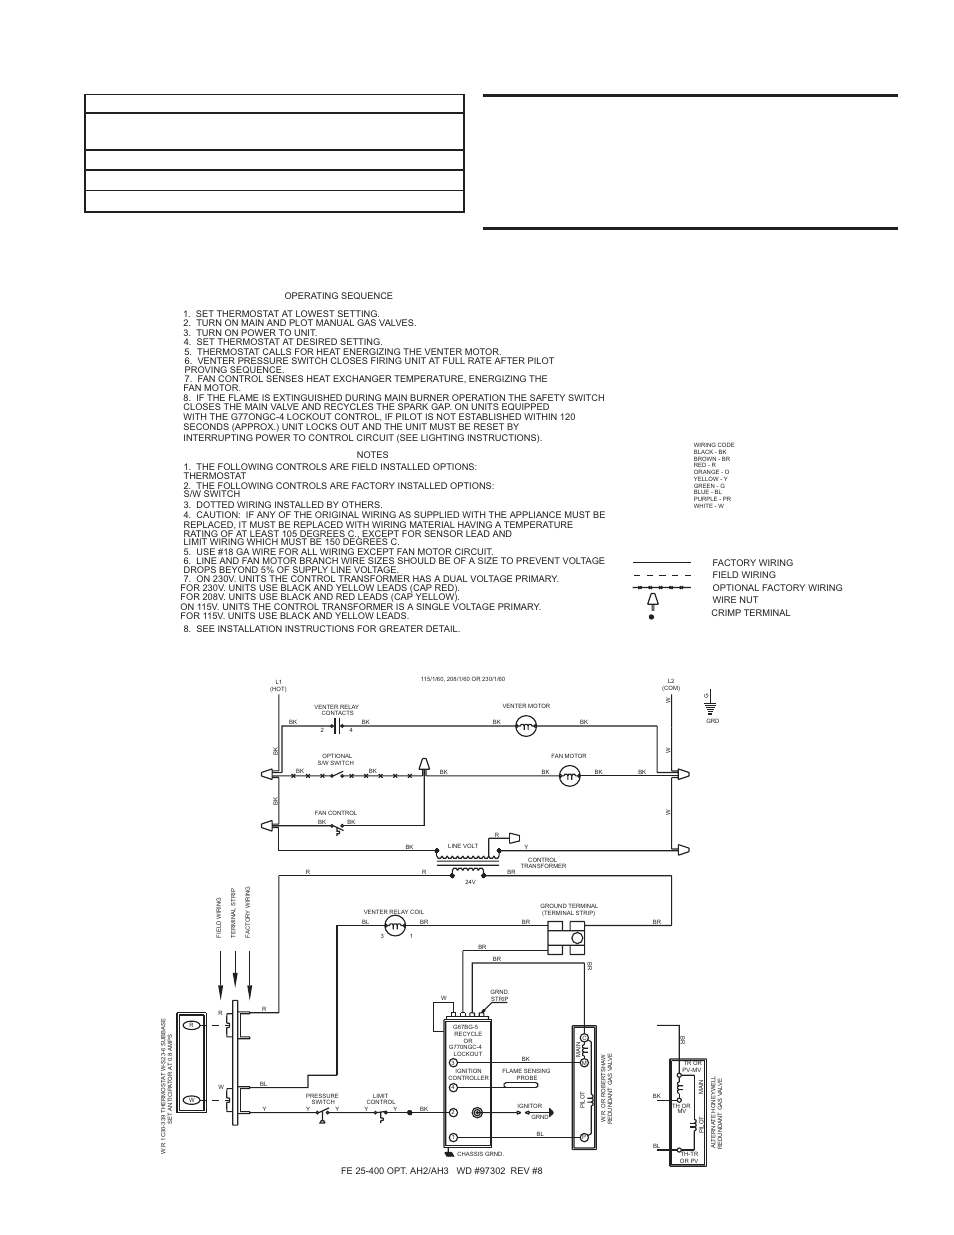 Reznor Unit Heater Wiring Diagram from schematron.org